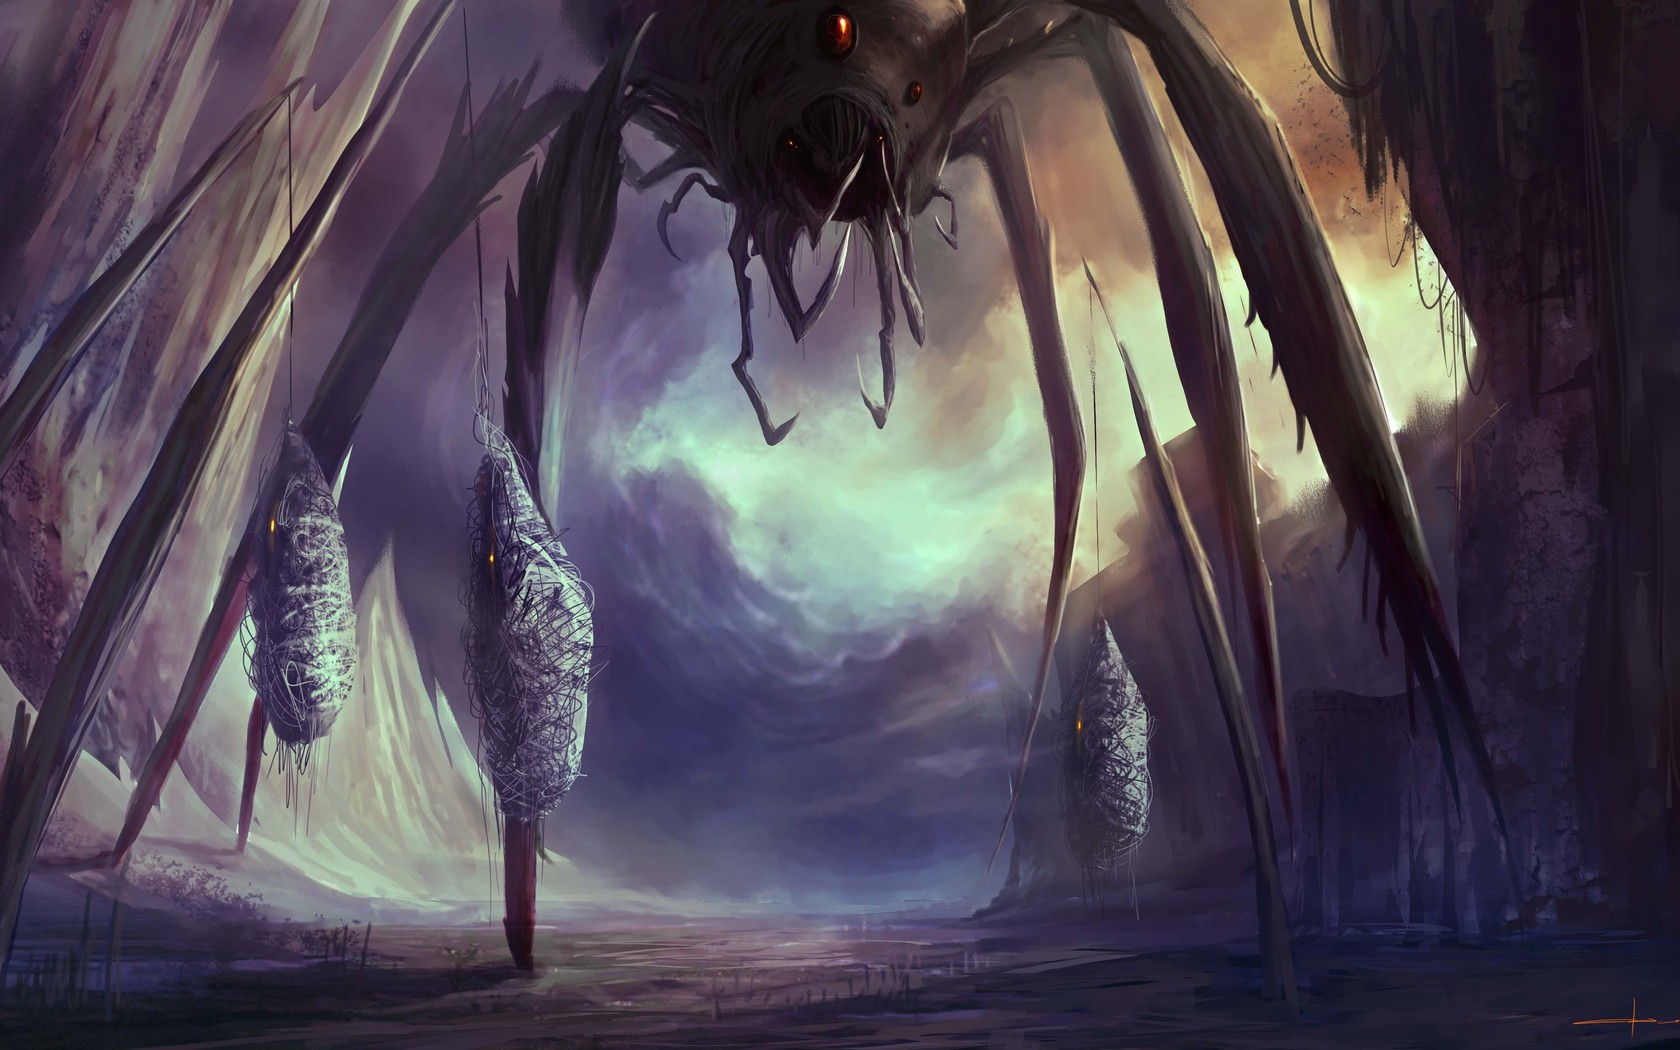 http://vignette1.wikia.nocookie.net/tales-of-azhahad/images/f/fe/Behemoth_Spider.jpg/revision/latest?cb=20140309003031